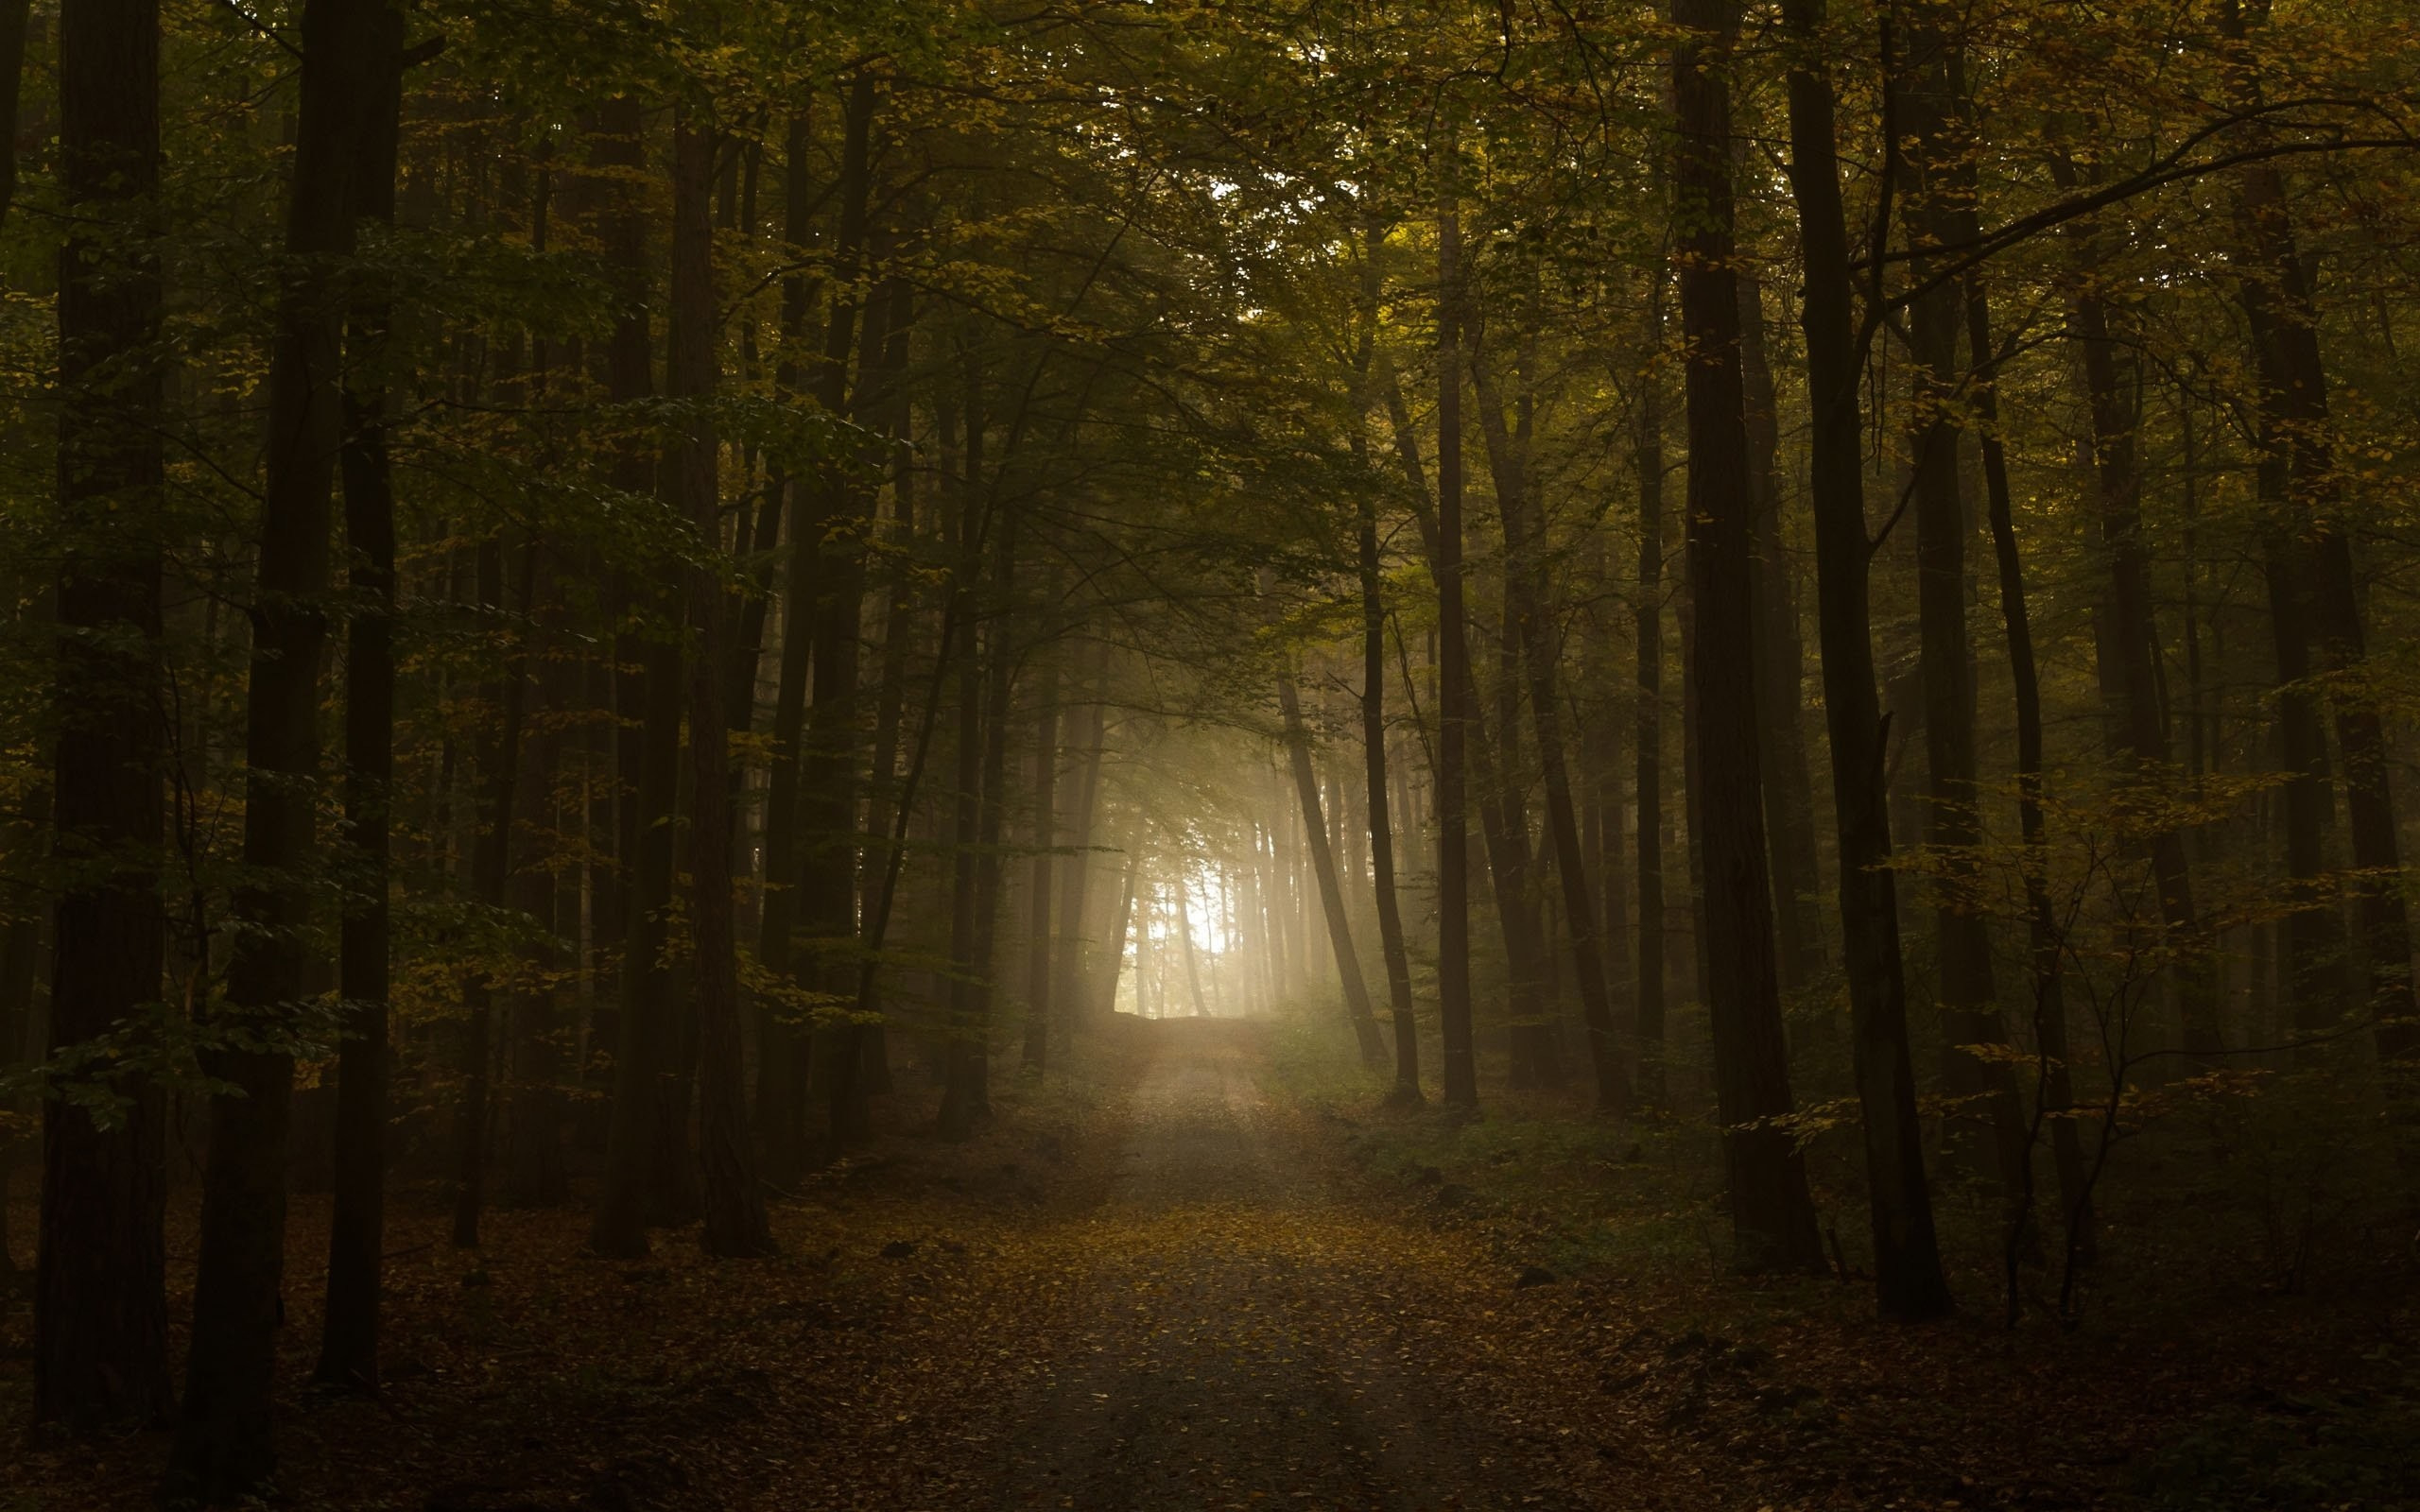 dream-wallpaper-wallpapers-spooky-creepy-forest-computer-horror.